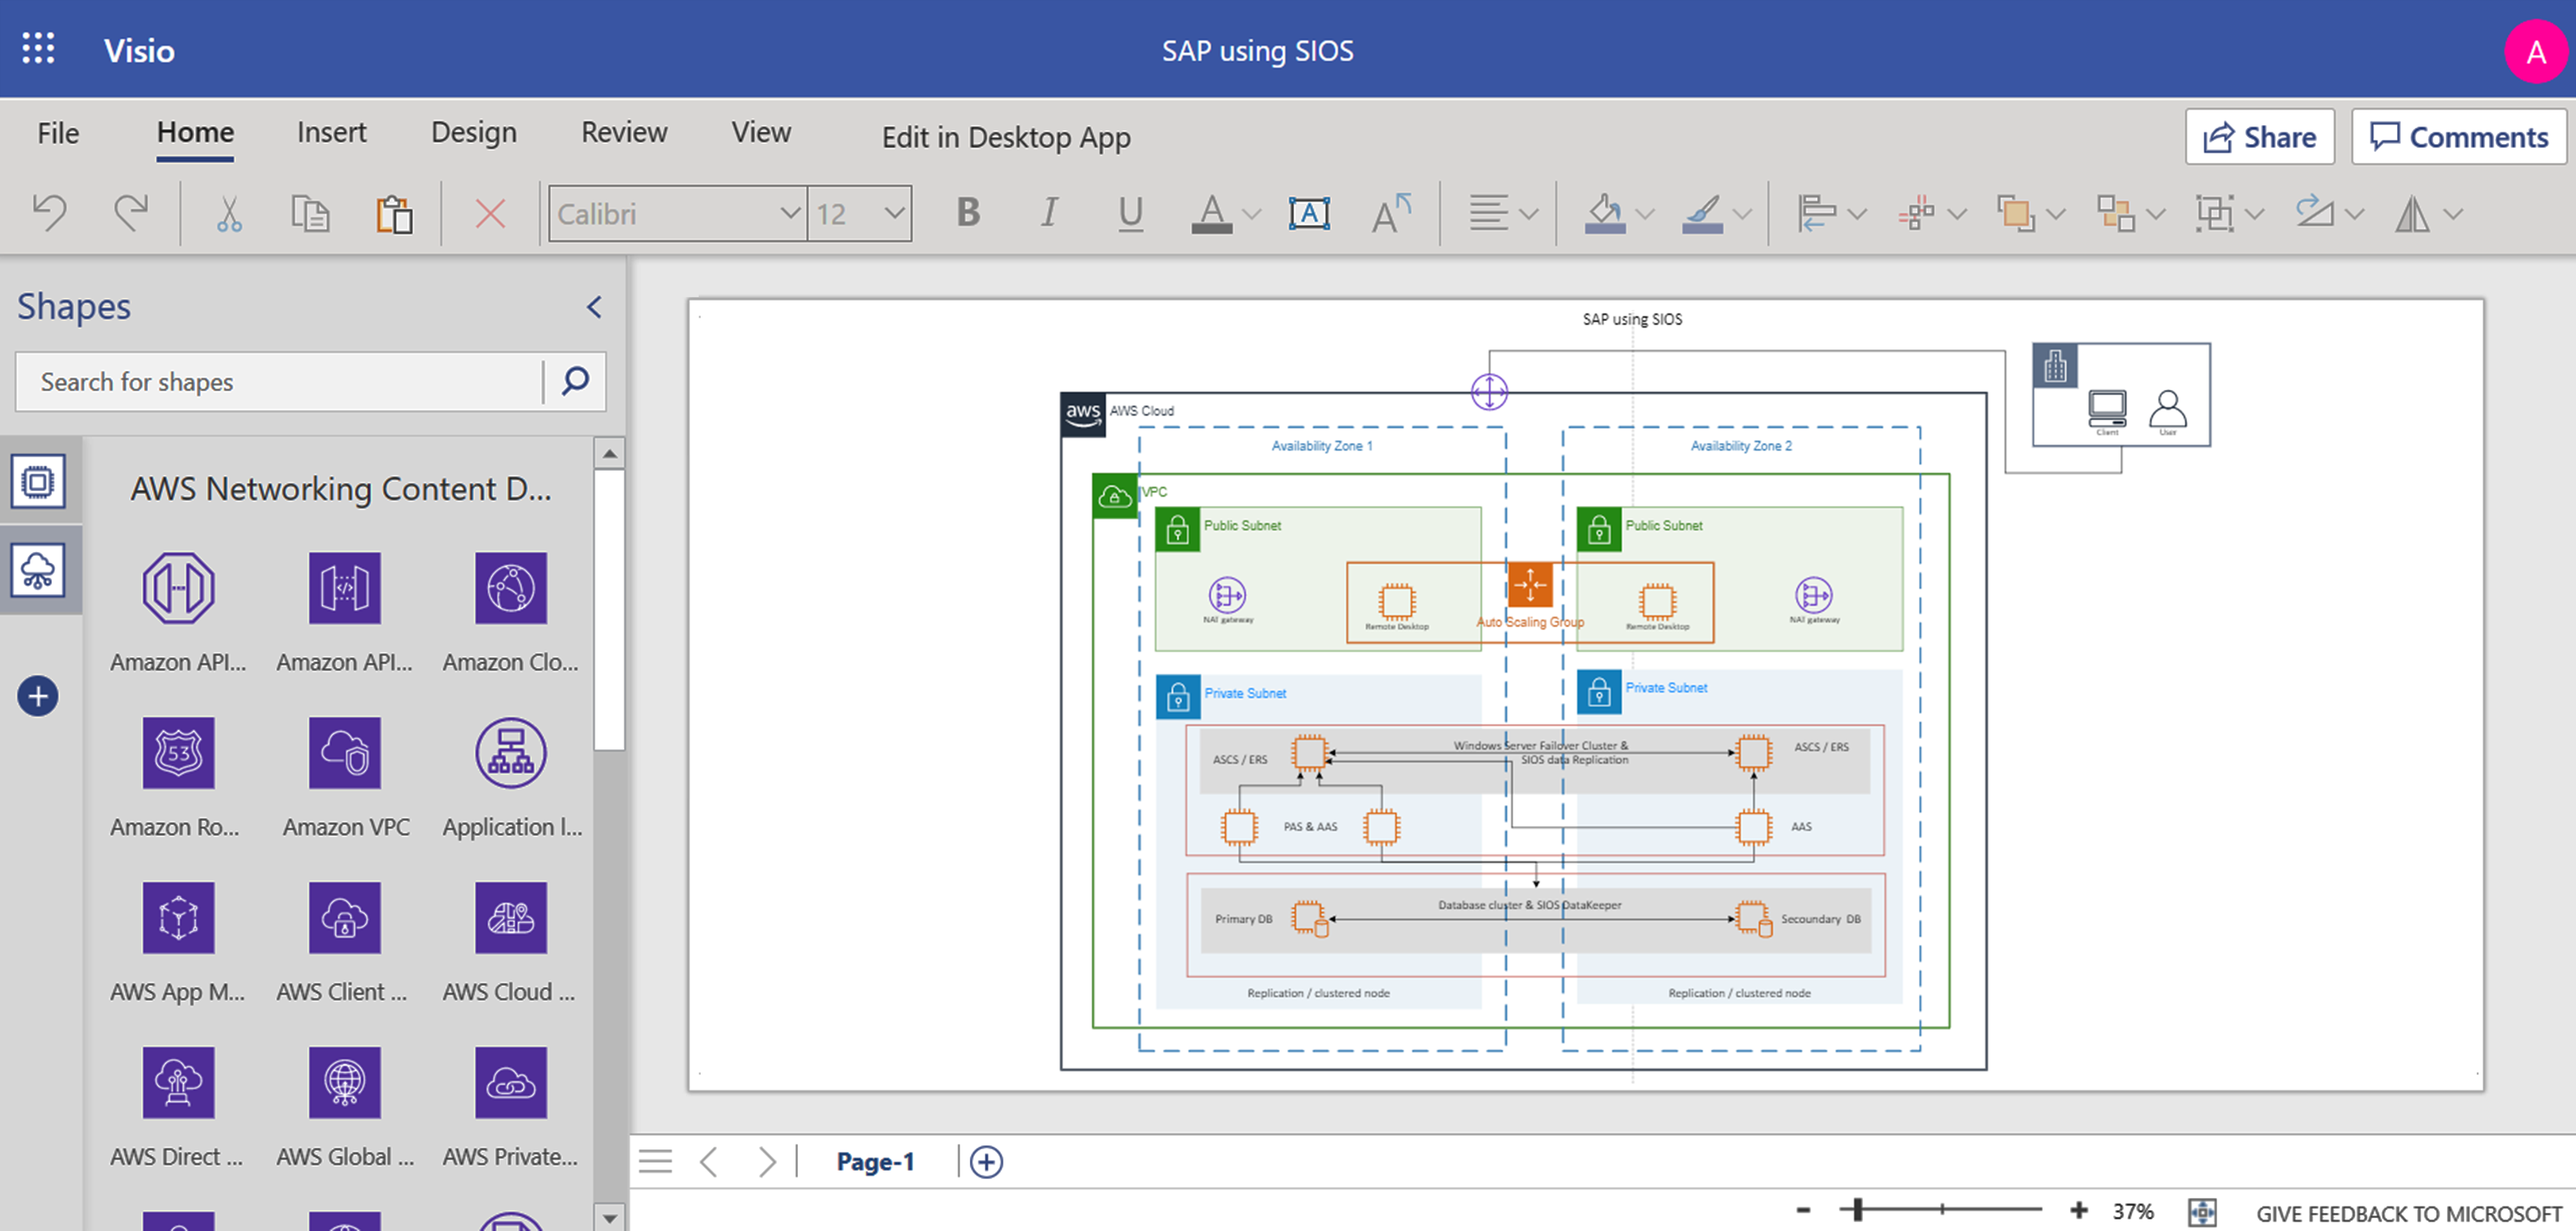 This image shows a screen shot diagram of SAP using SIOS.